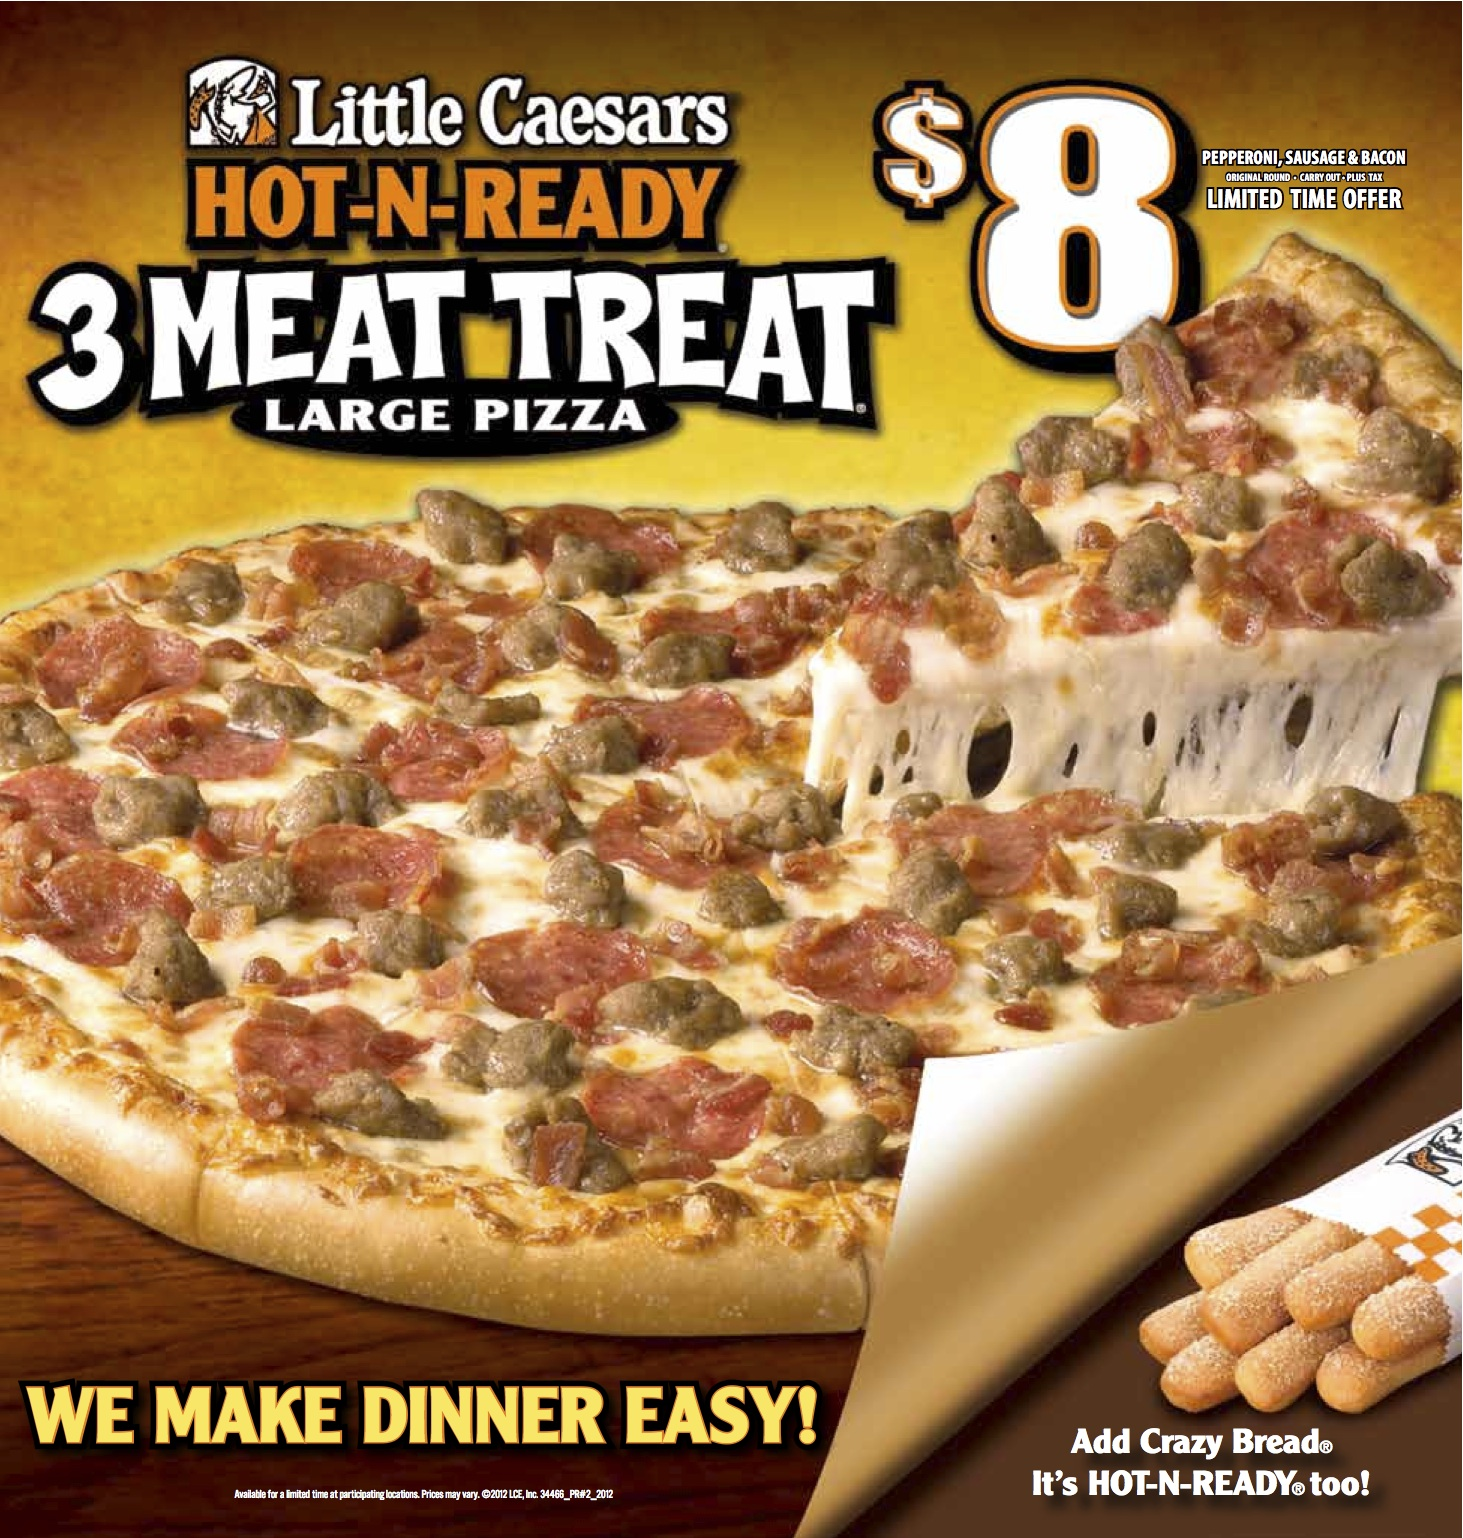 Little Caesars Pizza is a global pizza chain, supplying delicious pizza since The chain is known for its HOT-N-READY menu which is designed to allow for immediate pickup of menu items.